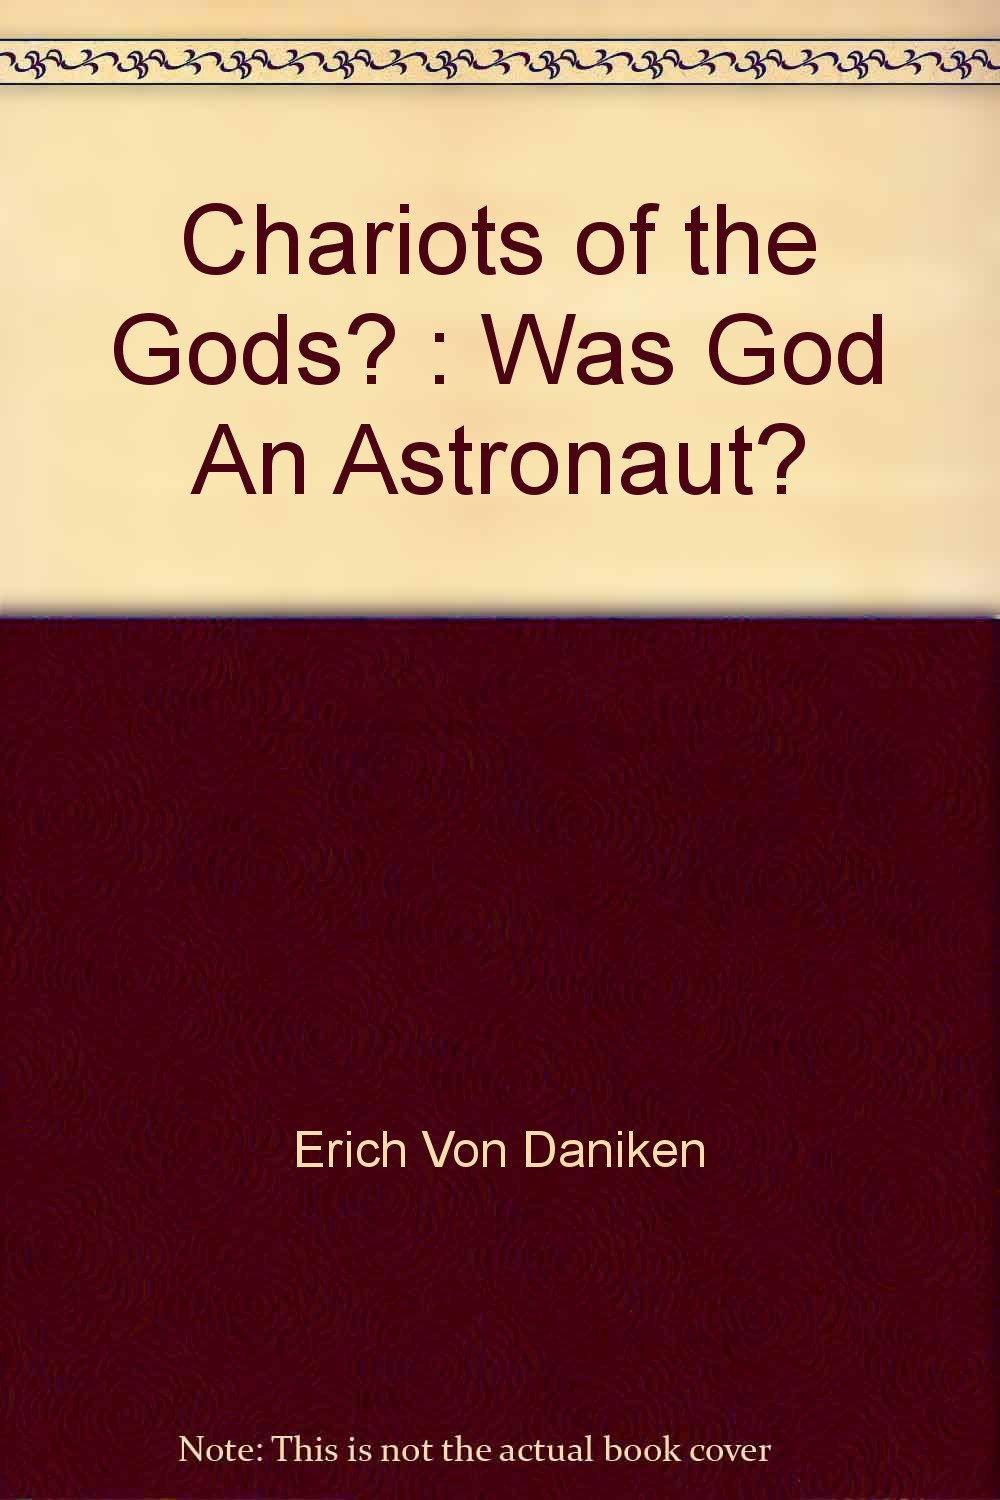 Chariots of the Gods? : Was God An Astronaut?: Amazon.co.uk: Erich Von  Daniken, Michael Heron: 9780425043127: Books